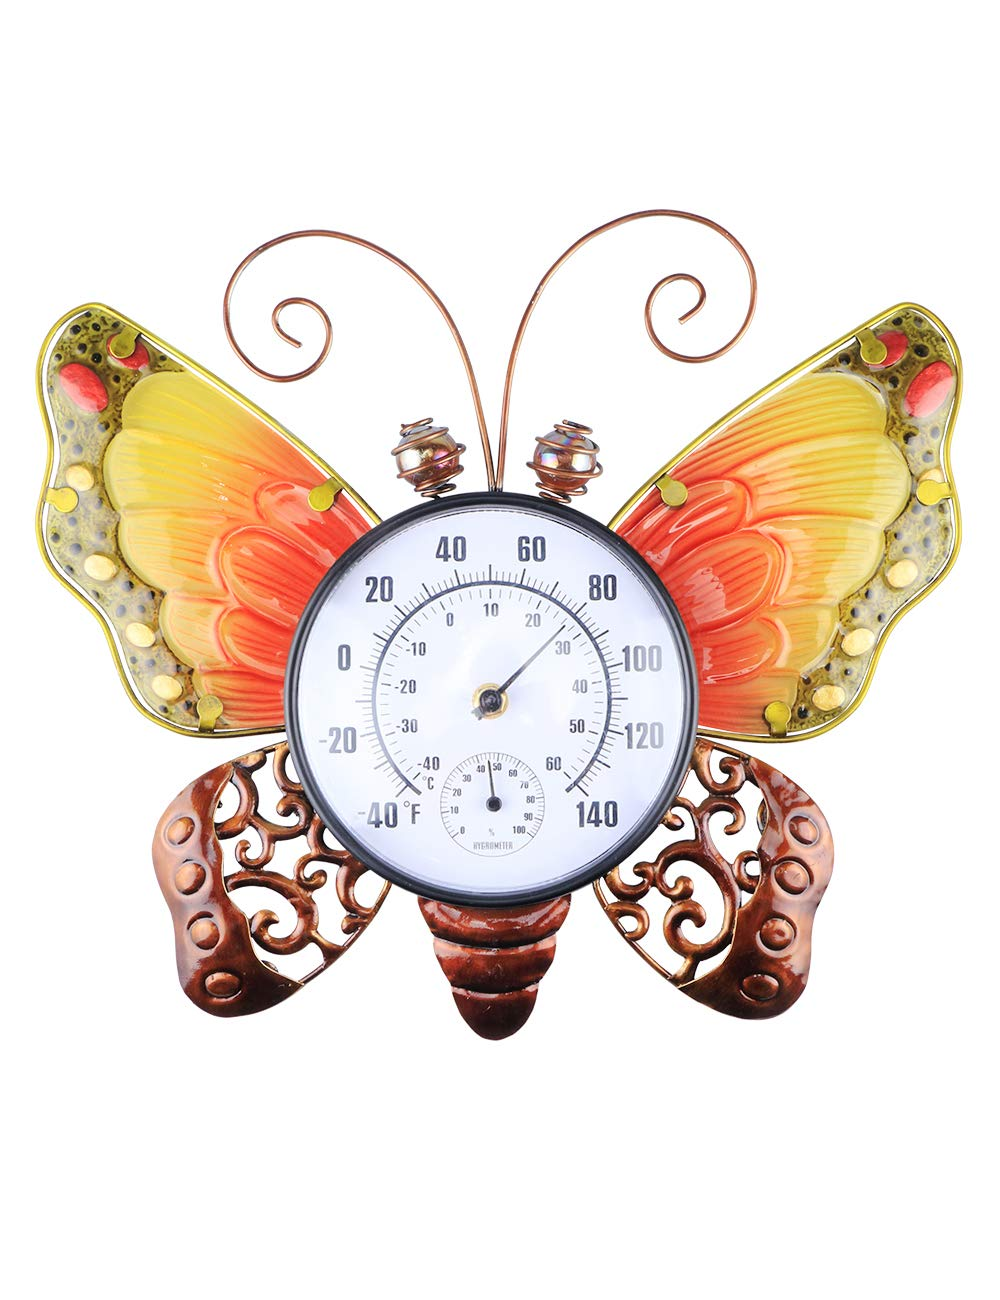 MUMTOP Thermometer Indoor Outdoor 15 Inch Patio Butterfly Waterproof Wall-Mounted Thermometer Does not Require Any Battery